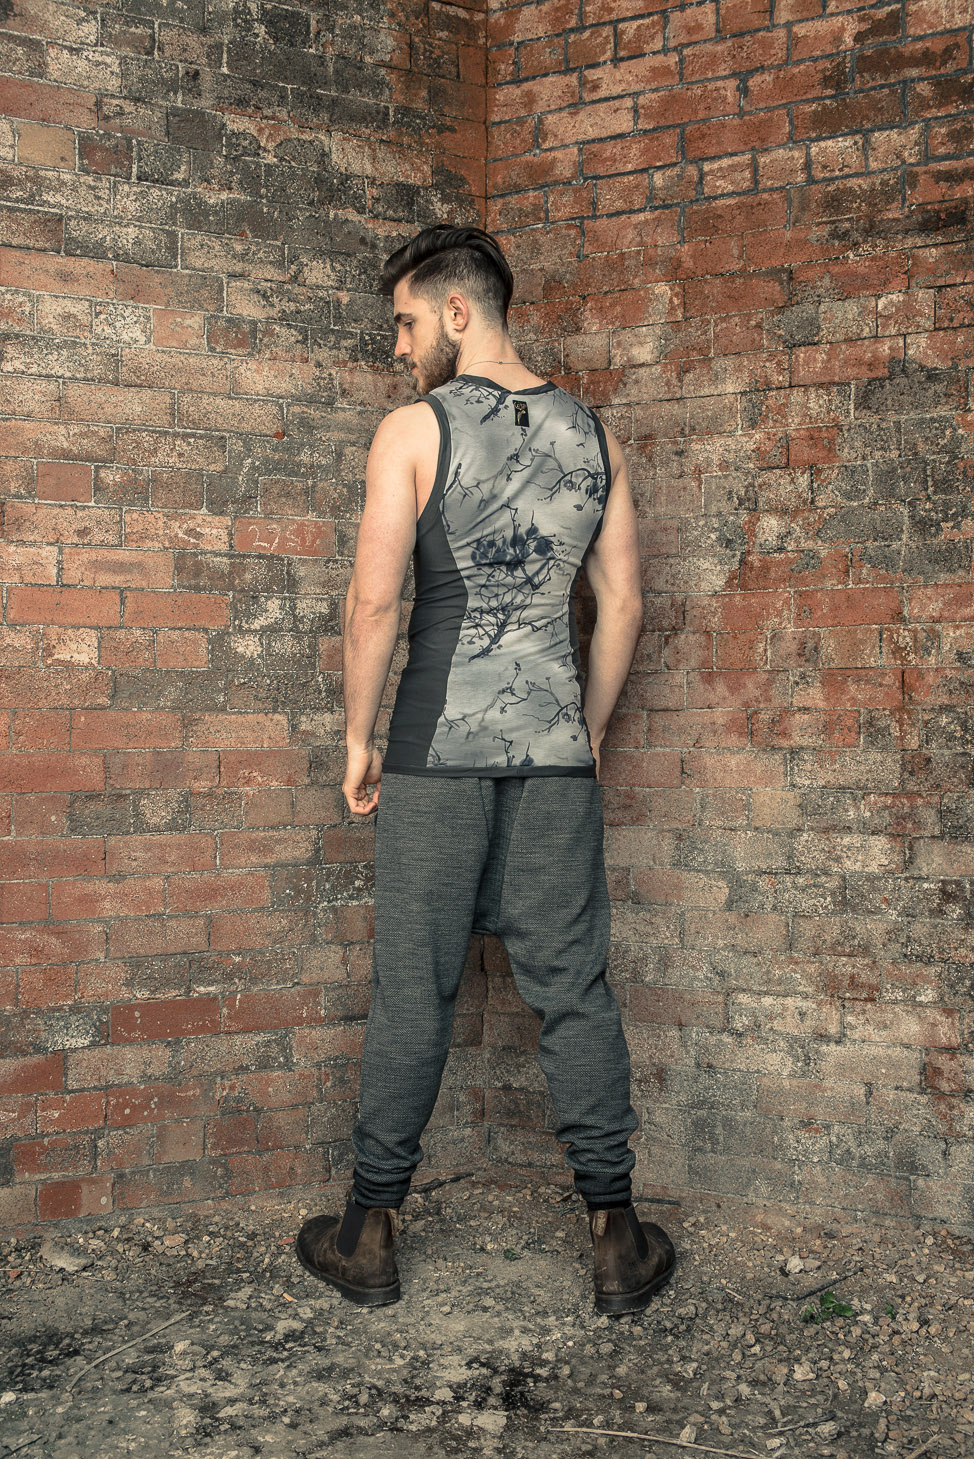 zaramia-ava-zaramiaava-leeds-fashion-designer-ethical-sustainable-tailored-minimalist-stripe-fitted-versatile-drape-grey-tshirt-top-vest-hareem-trousers-black-grey-texture-styling--16